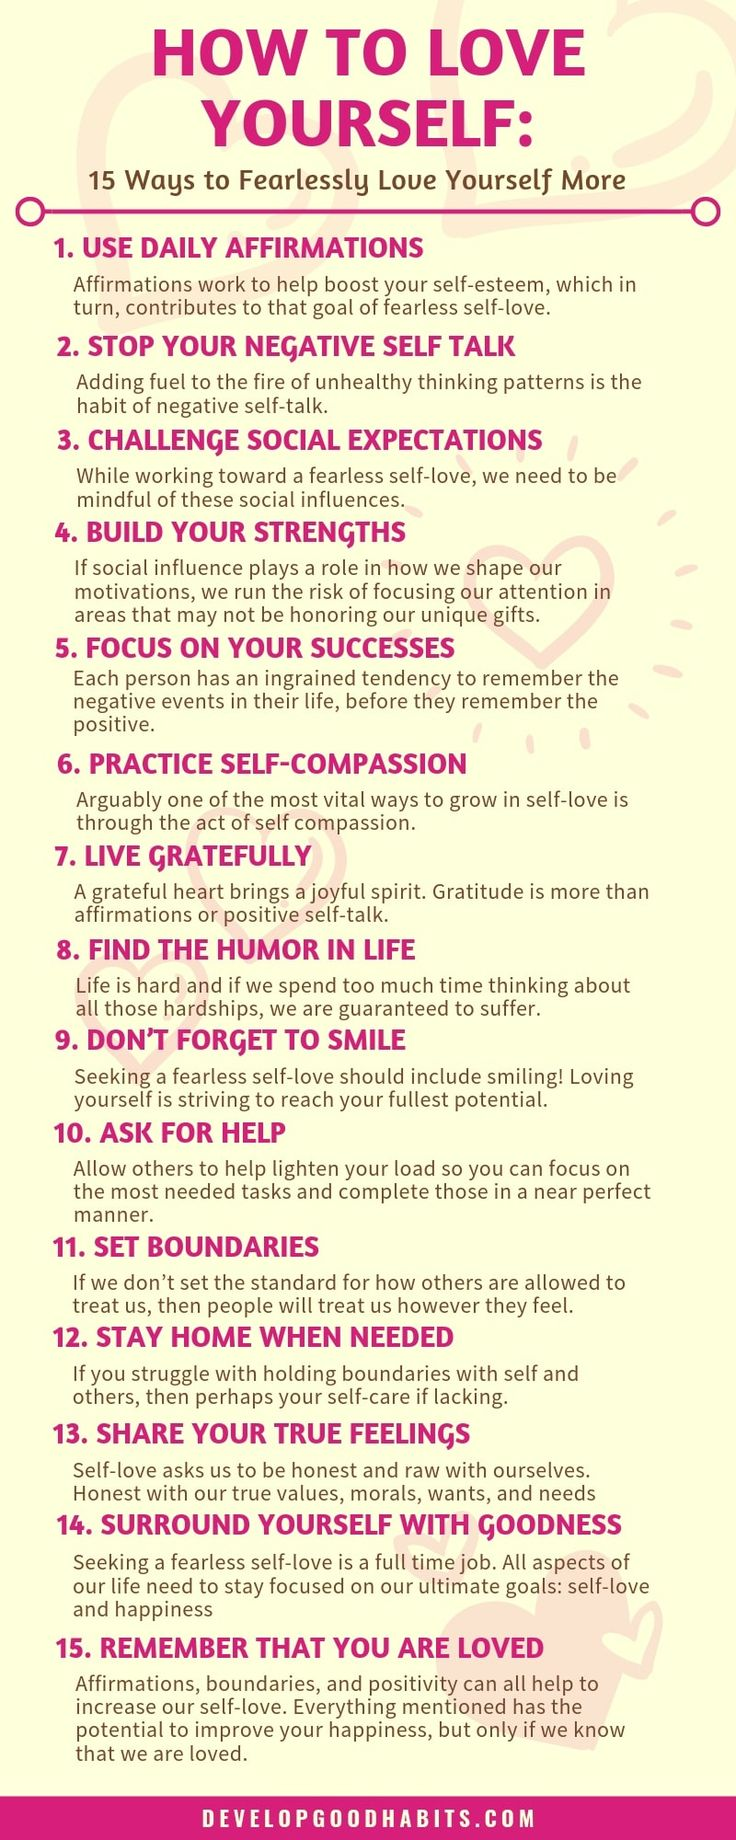 How to Love Yourself (15 Ways to increase self-love)